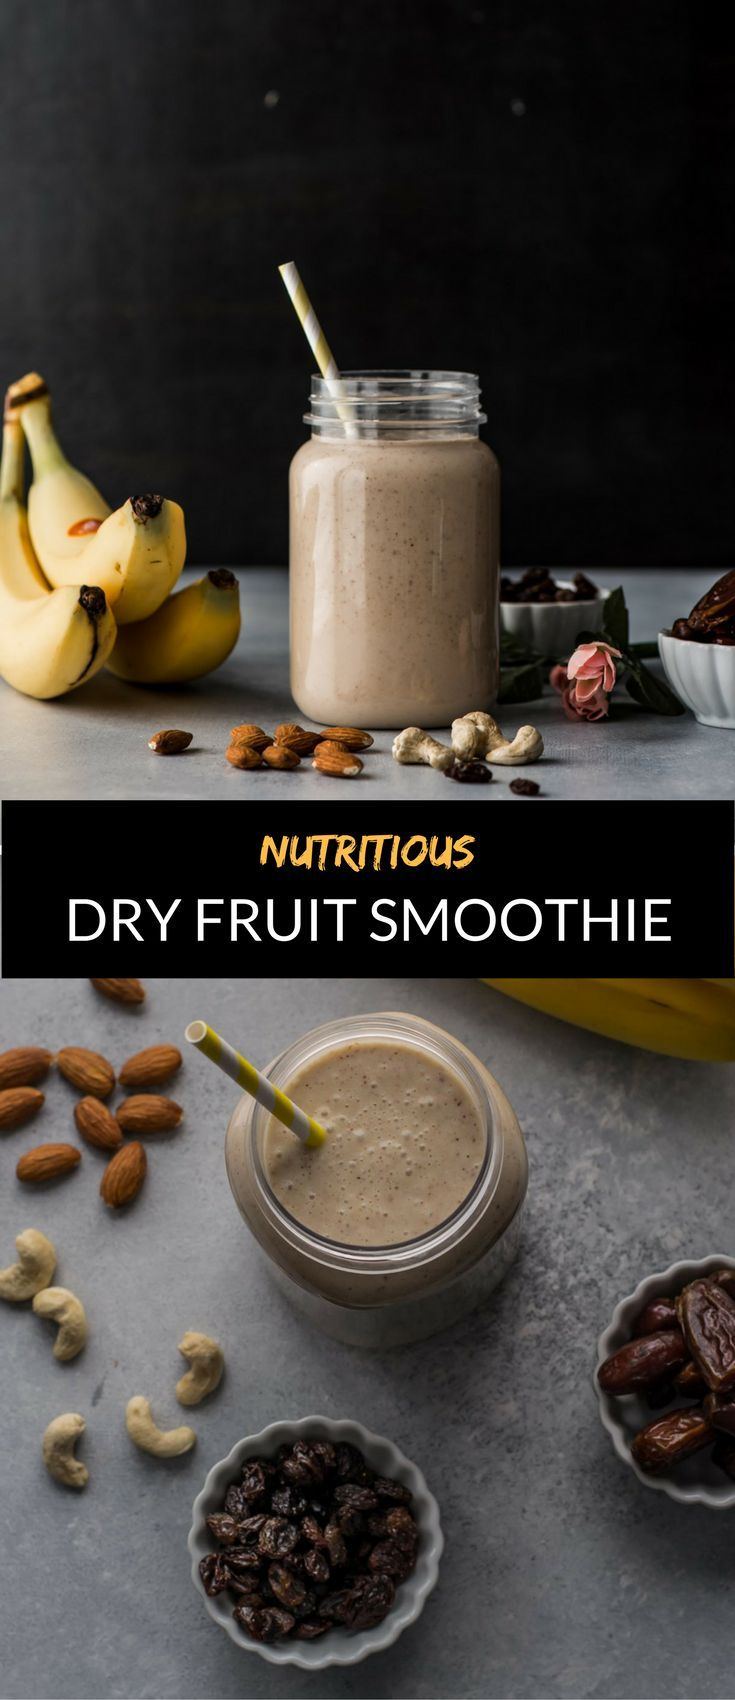 Dry fruit smoothie is a great way to combine nutritious milk and dry fruits to create a wholesome meal for any time of the day. This is a sponsored post.